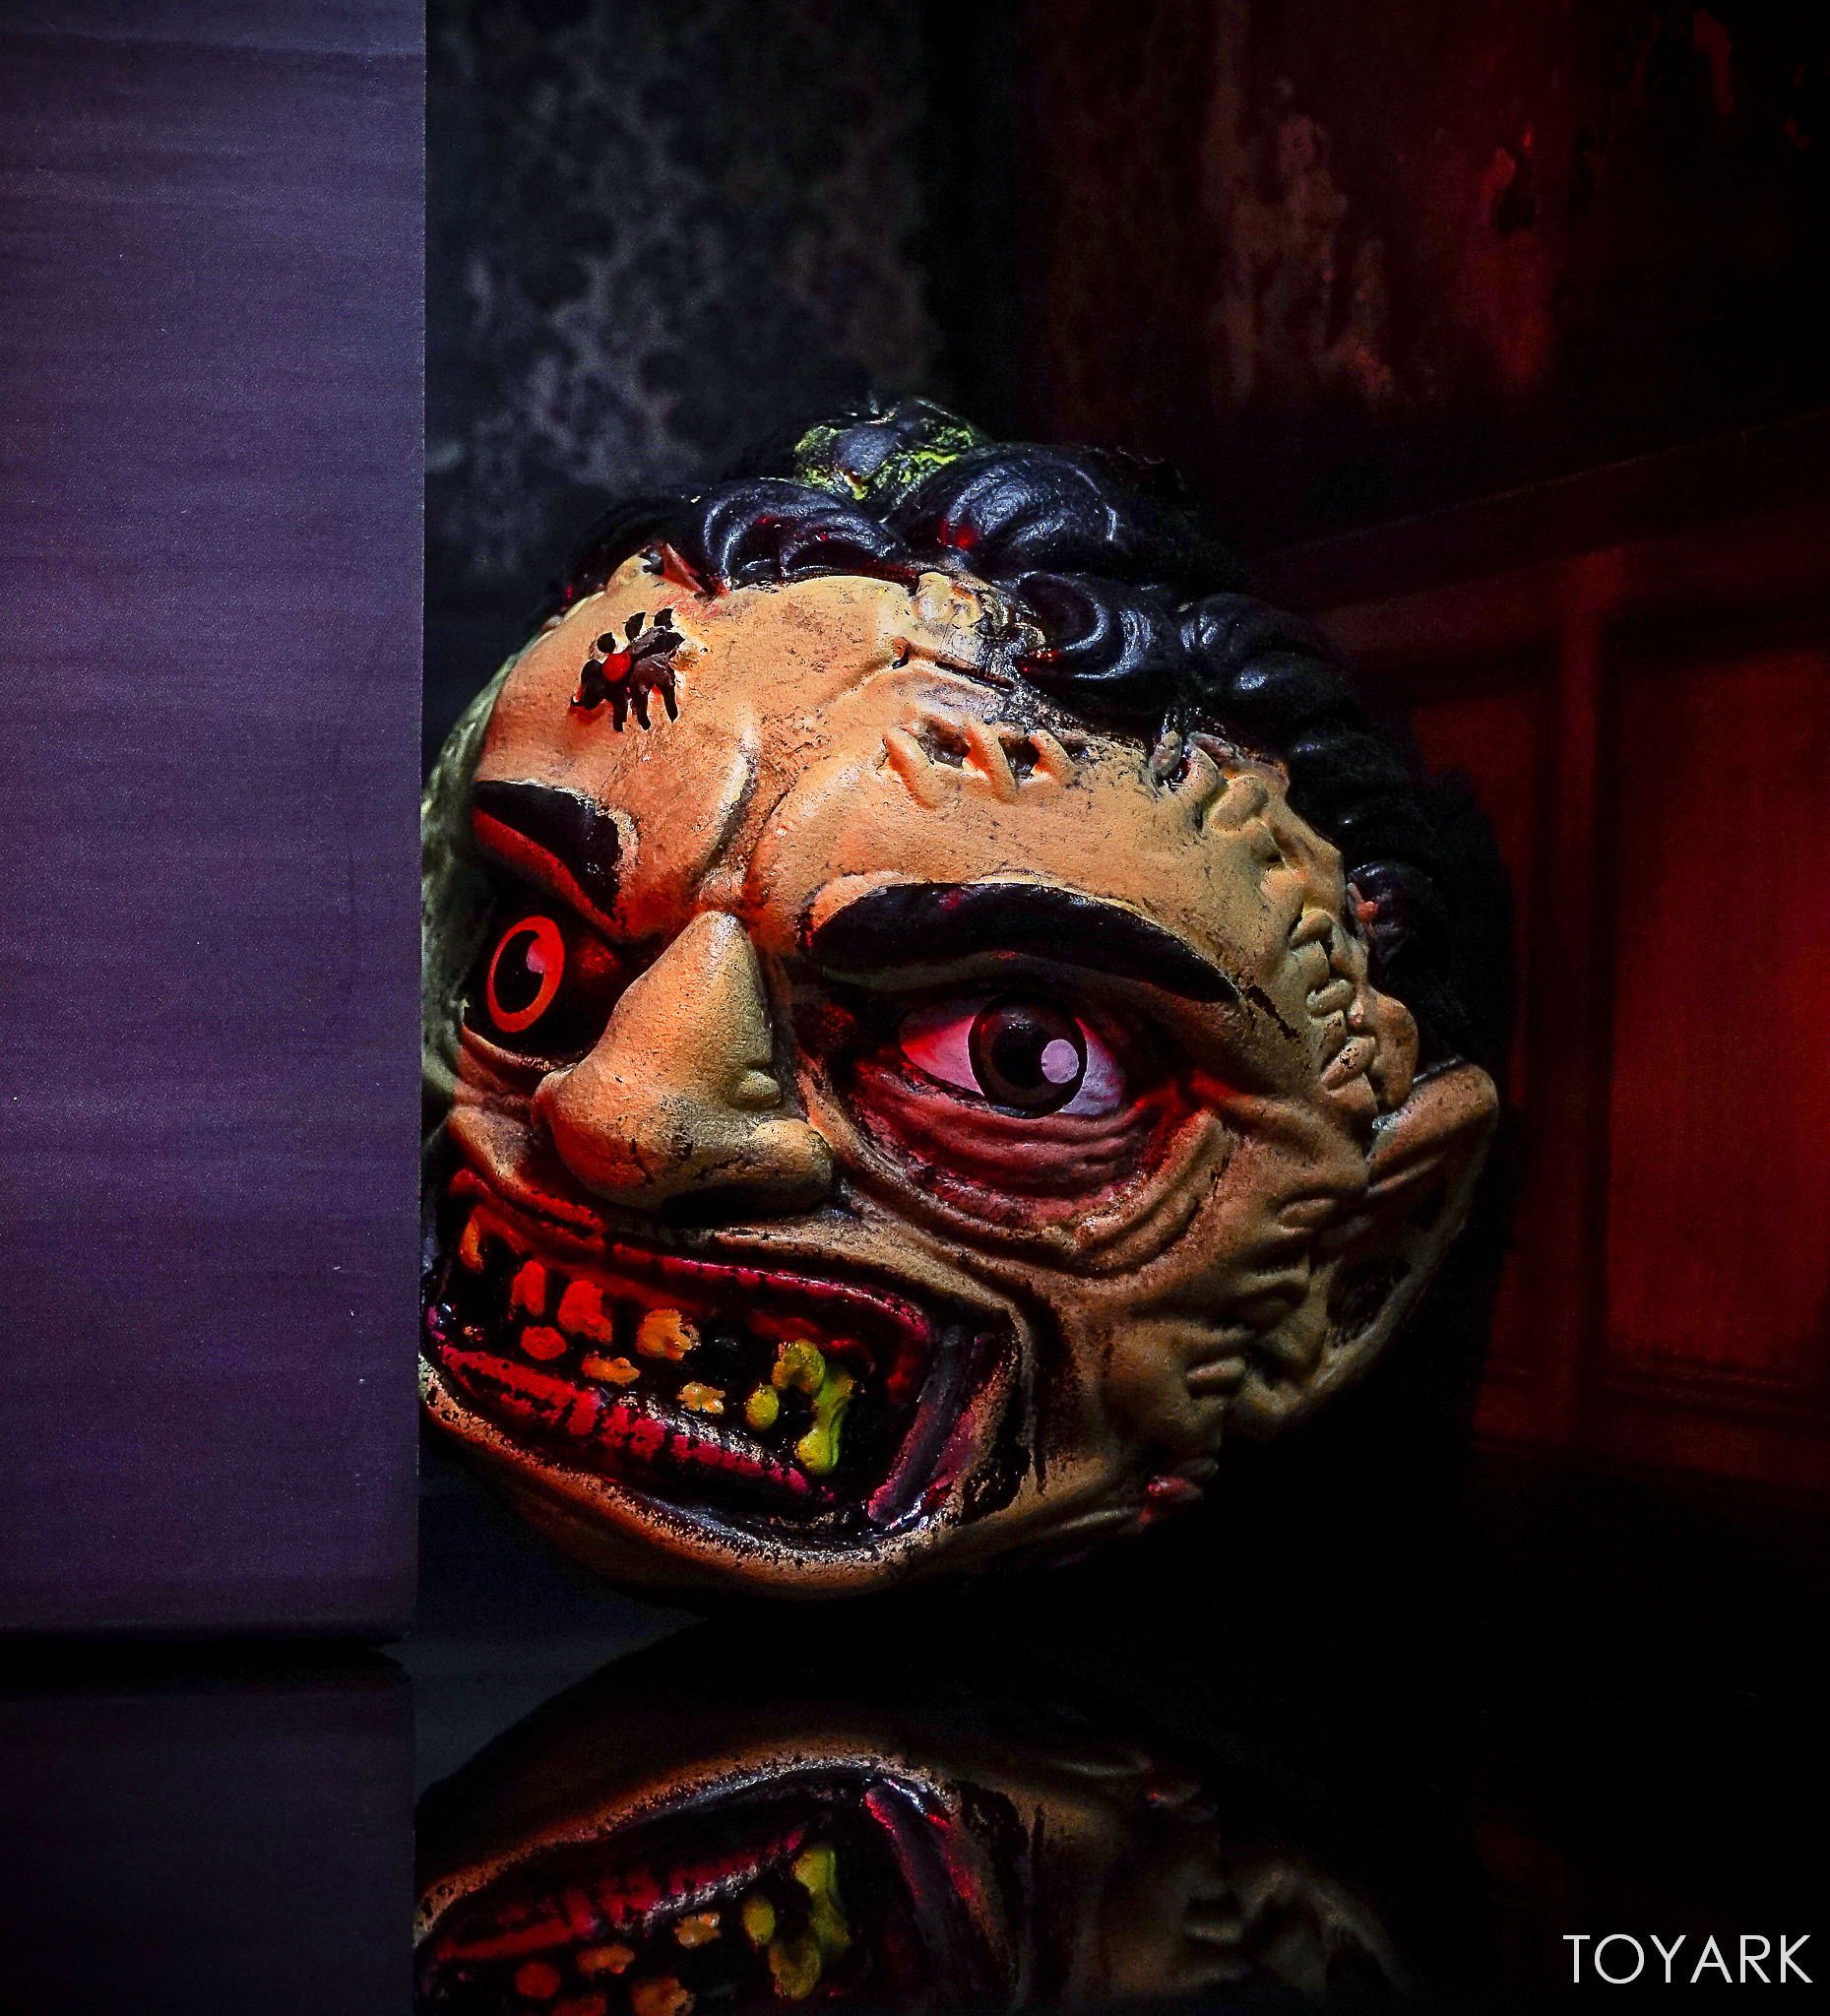 http://news.toyark.com/wp-content/uploads/sites/4/2017/09/Kidrobot-Horror-and-Sci-Fi-Madballs-033.jpg